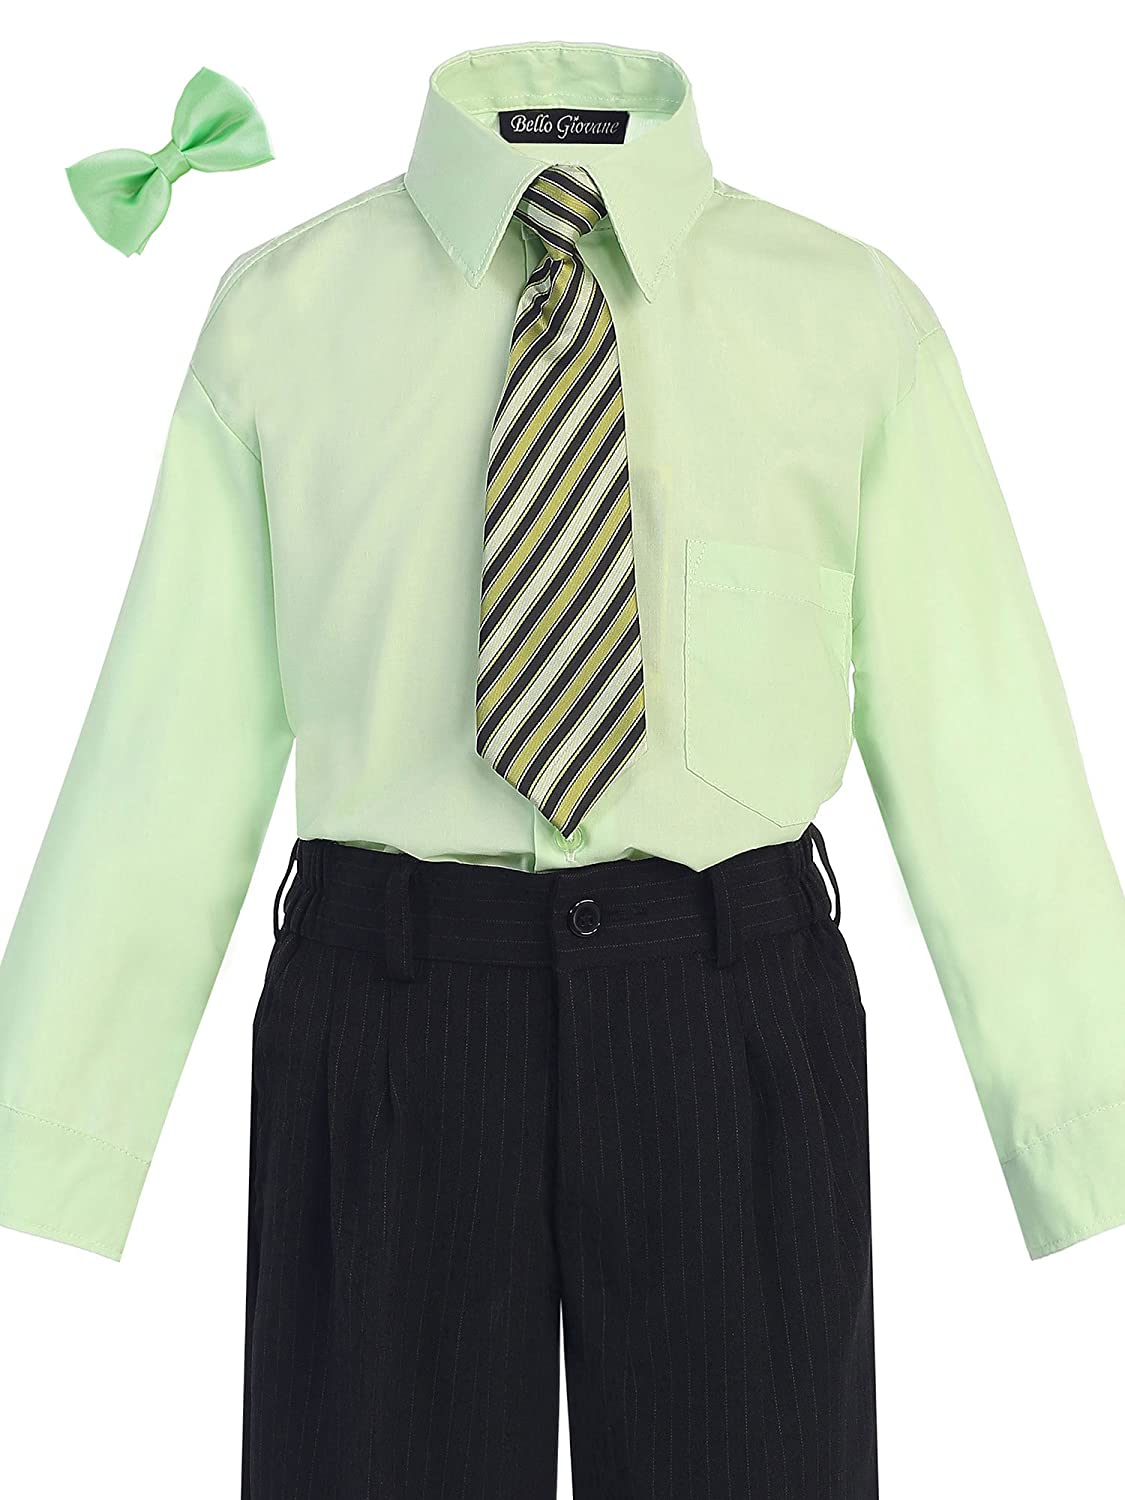 Bello Giovane Boys Dress Shirt with Tie Set (Free Bow Tie)